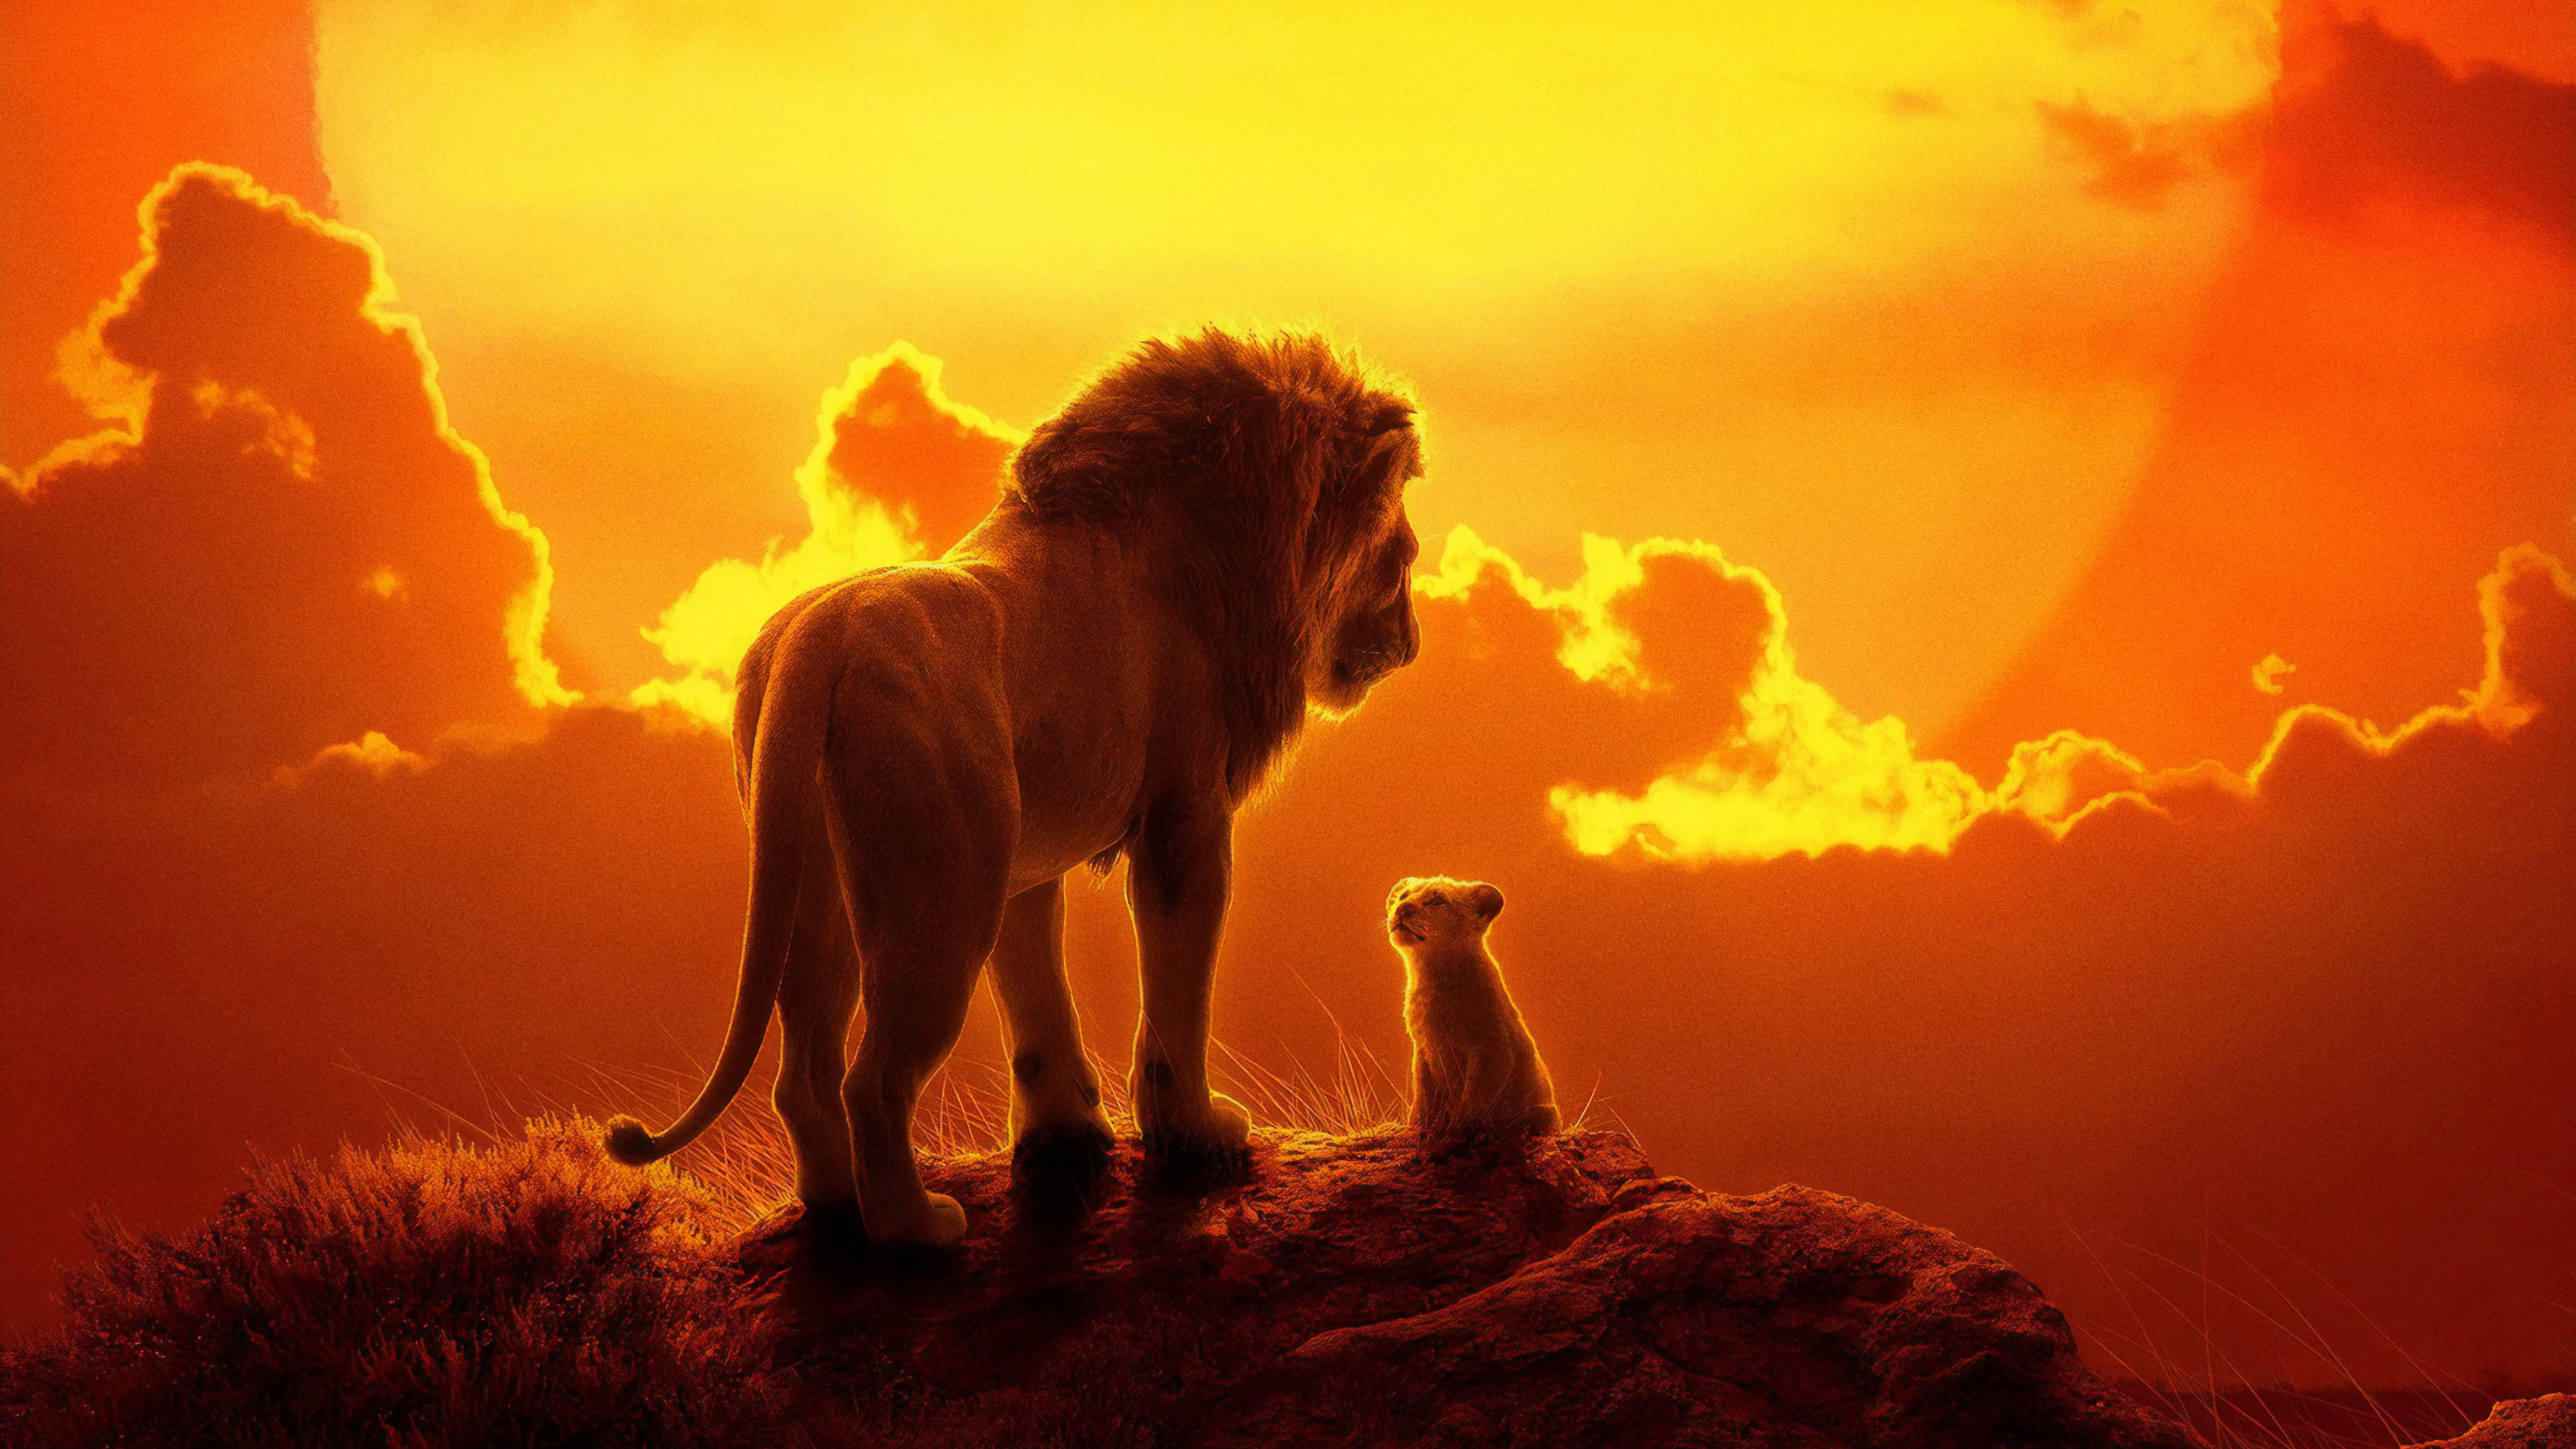 the lion king movie  hd movies  4k wallpapers  images